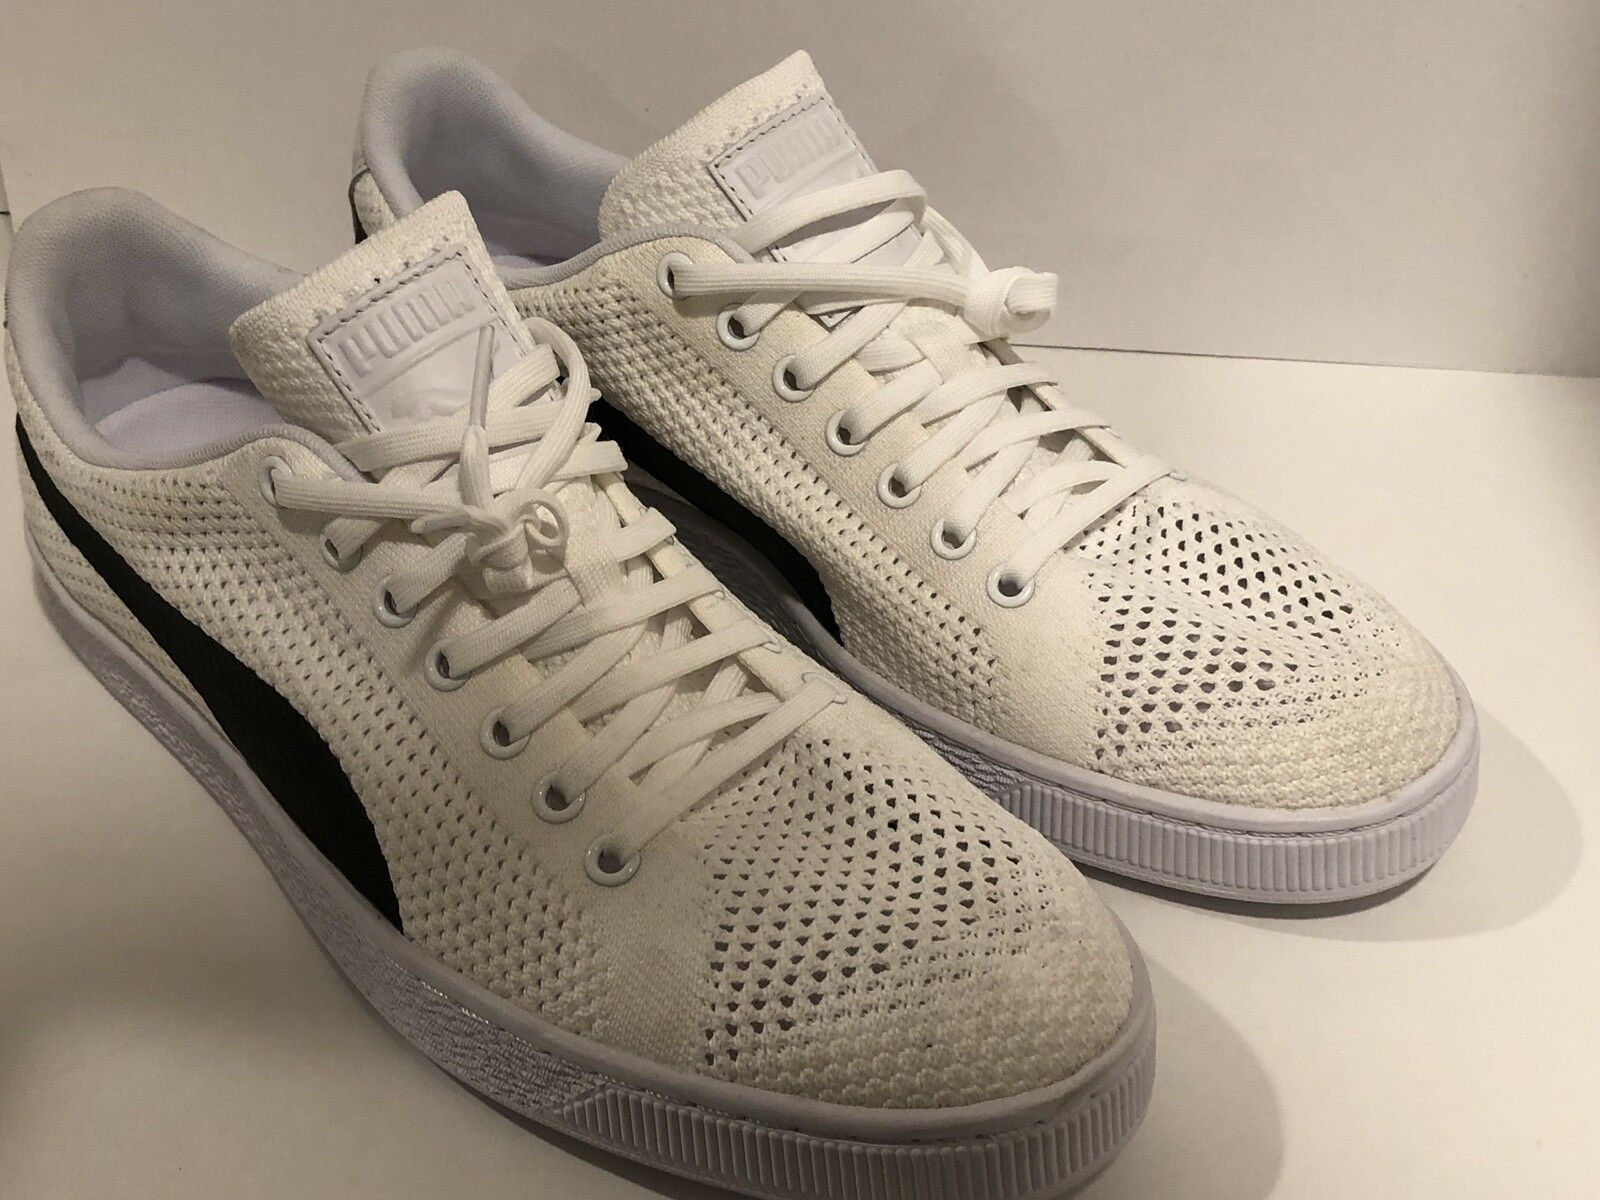 Puma Basket Classic EvoKNIT White Men Casual Lifestyle shoes Sneakers